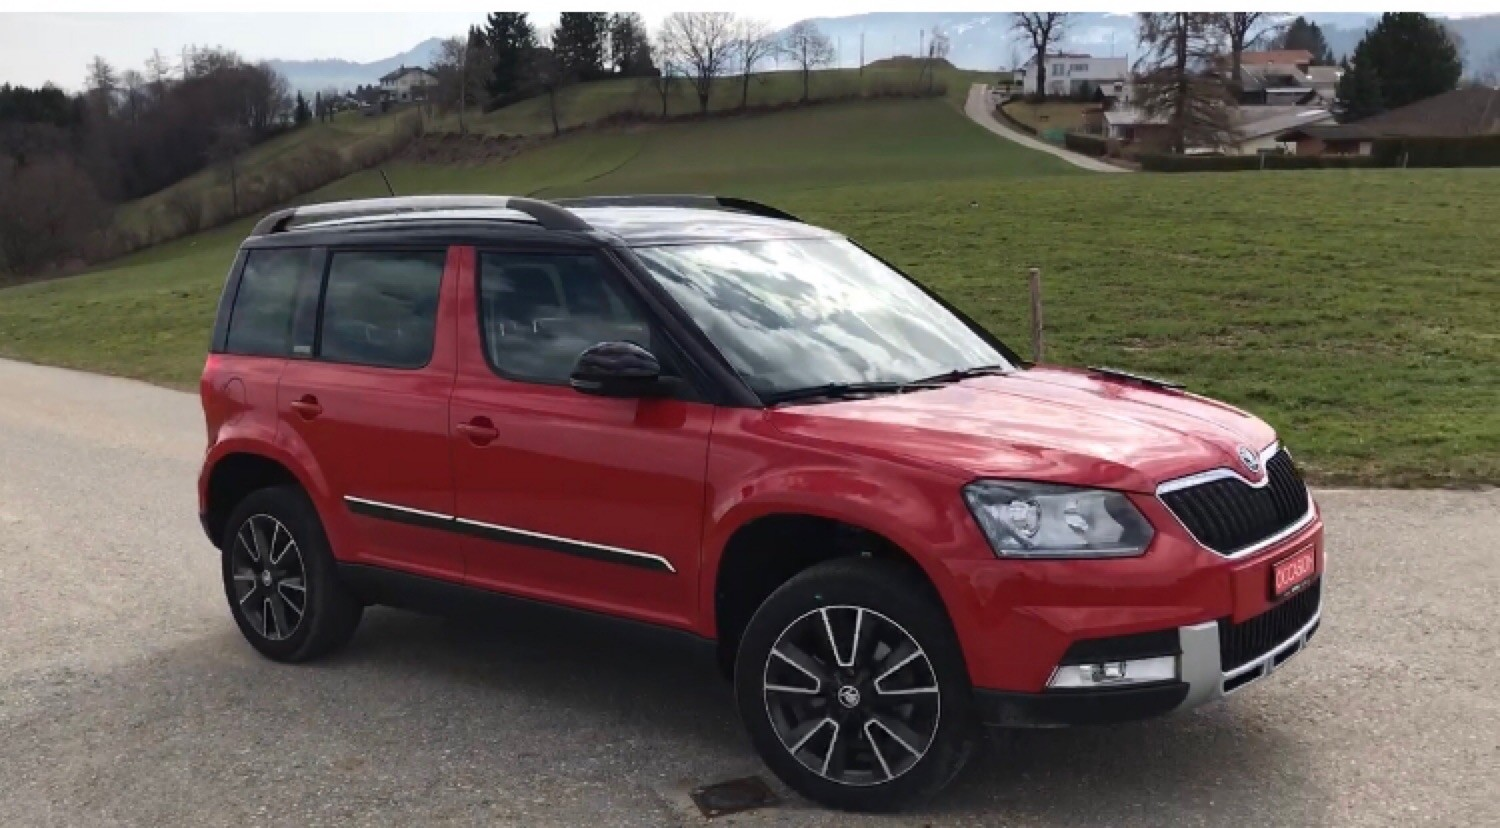 Buy Suv Skoda Yeti 2 0 Tdi Adventure 65000 Km At 17400 Chf On Carforyou Ch